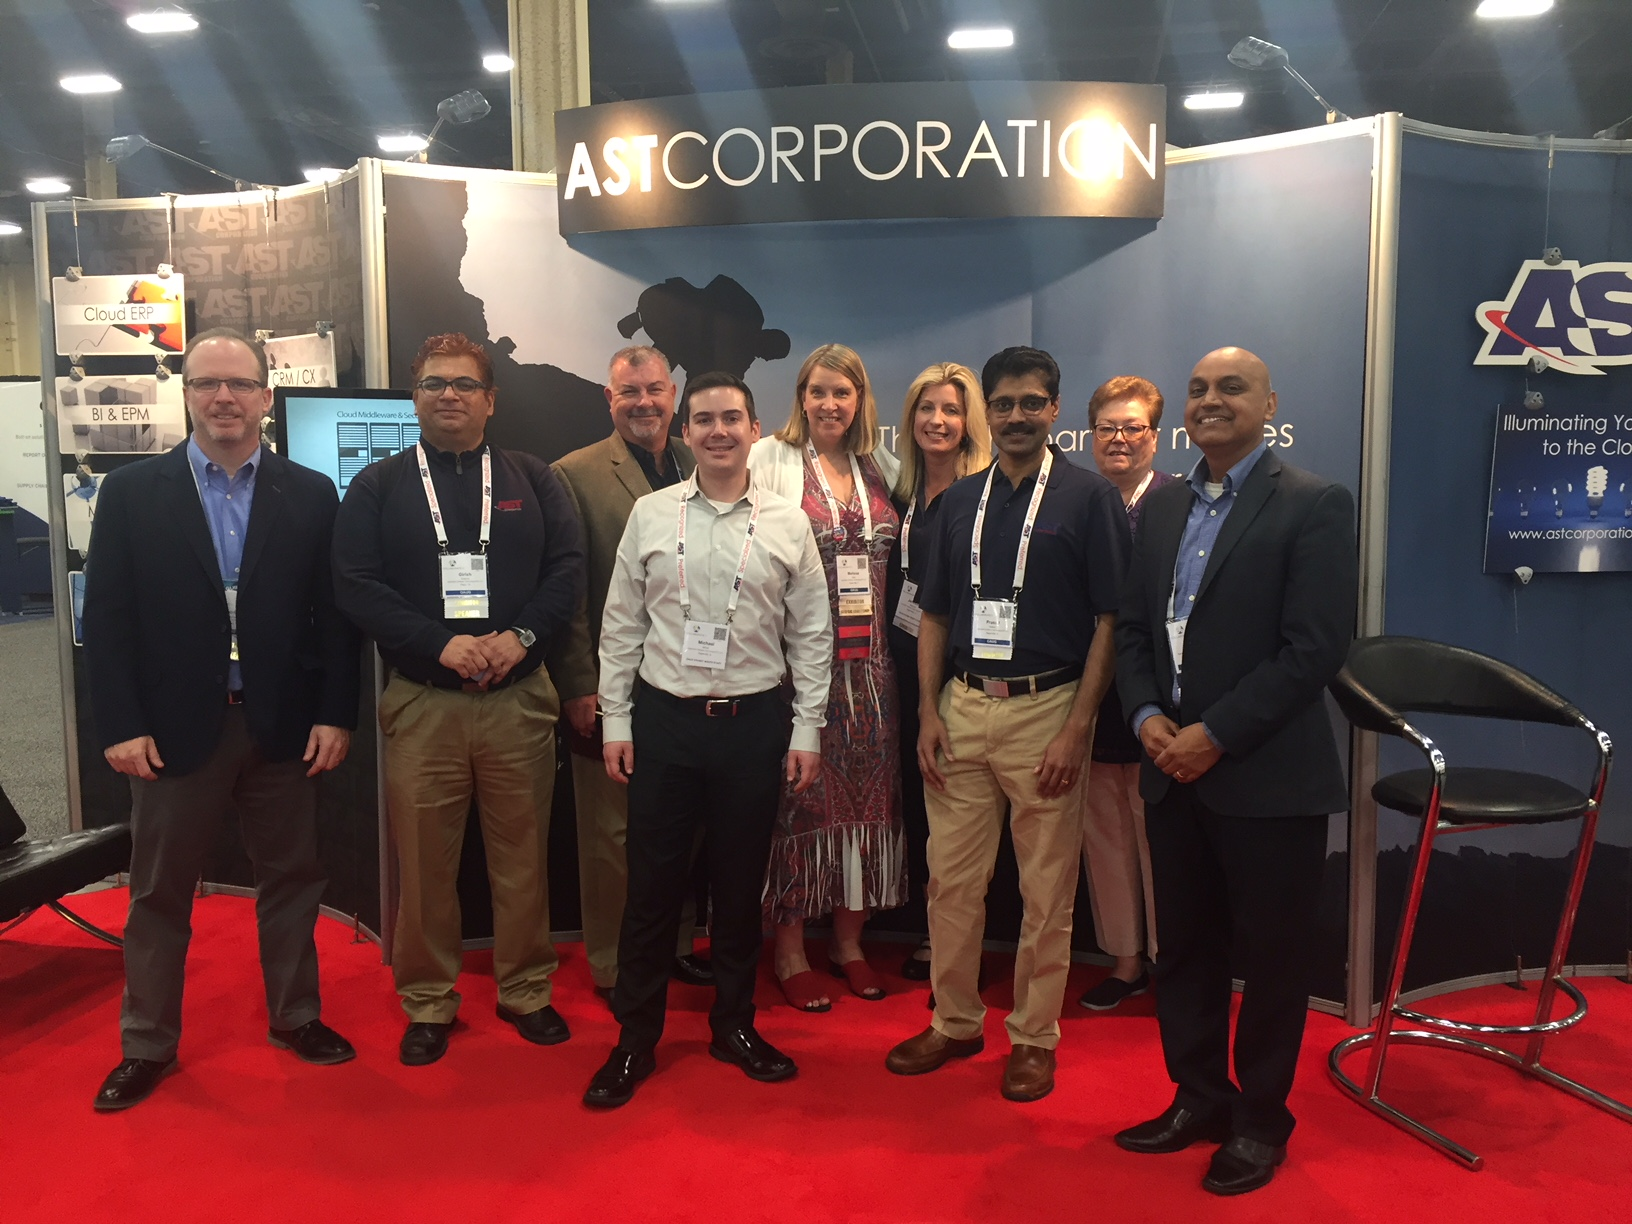 COLLABORATE 18:  Last Chance to Visit AST at Booth 1417!